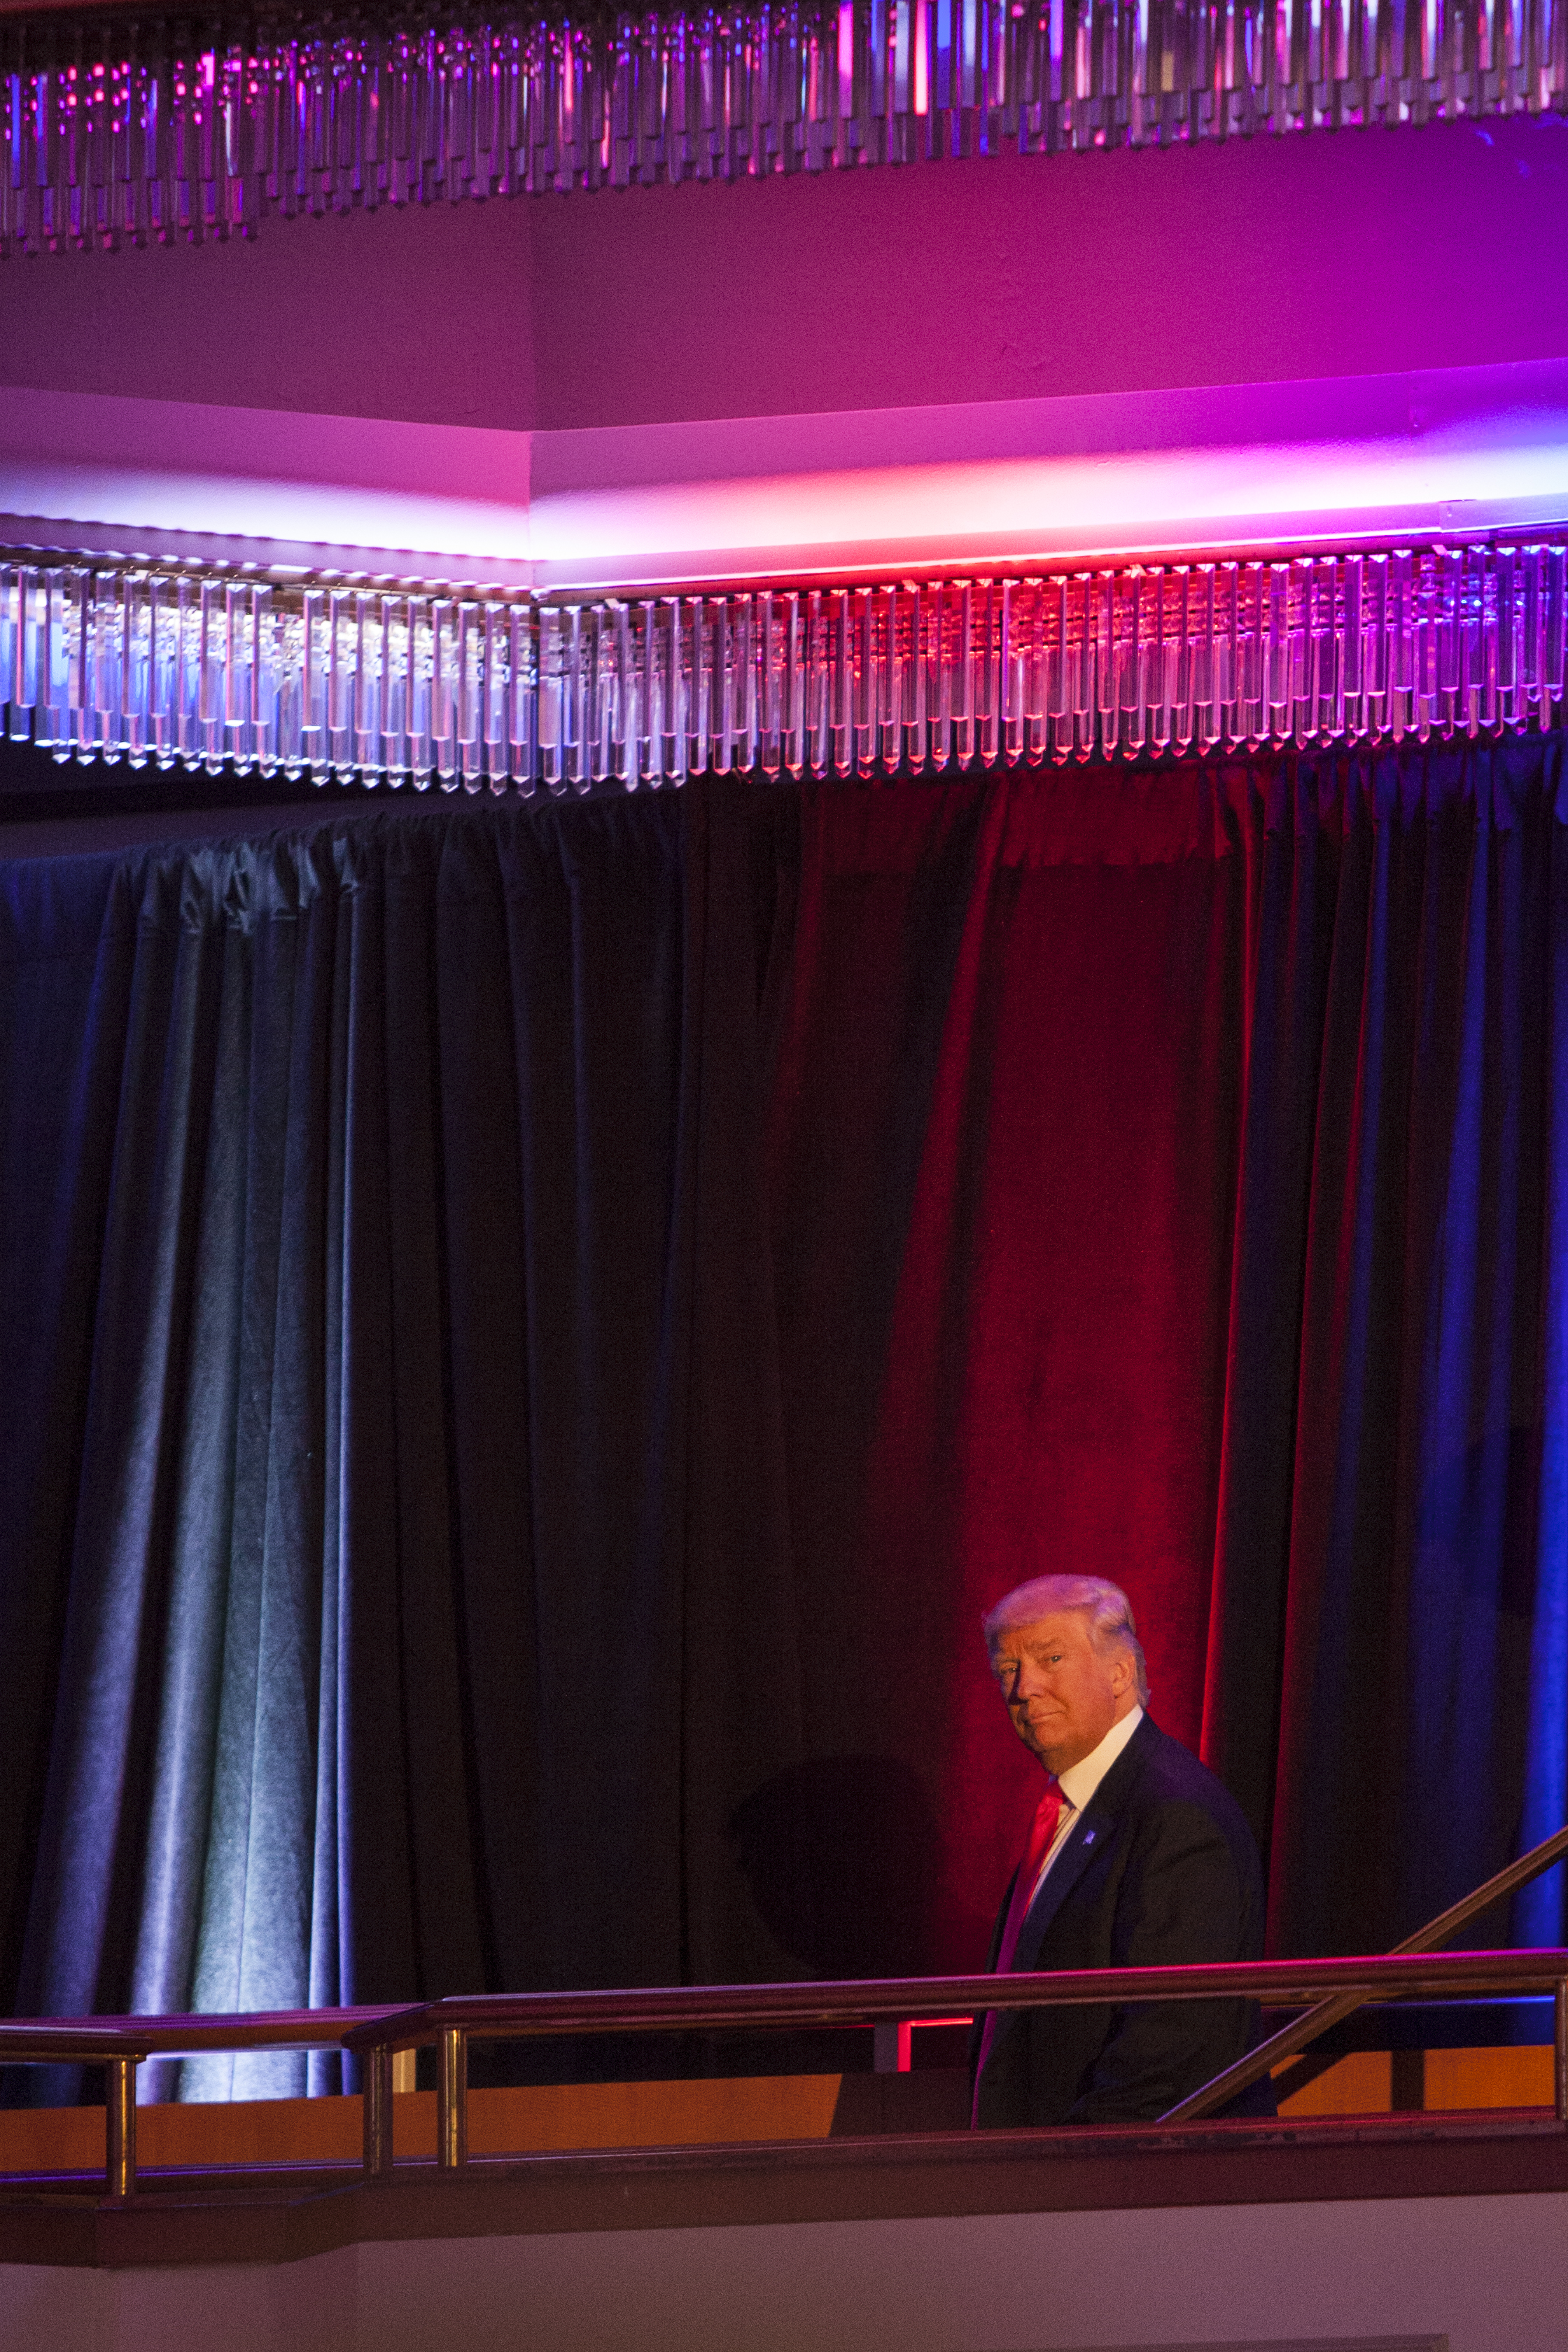 President-elect Donald Trump arrives to deliver his speech at his Victory Night party on Tuesday, Nov. 8, 2016 in New York's Manhattan borough. Trump defeated Democratic nominee Hillary Clinton in the contest for president of the United States.